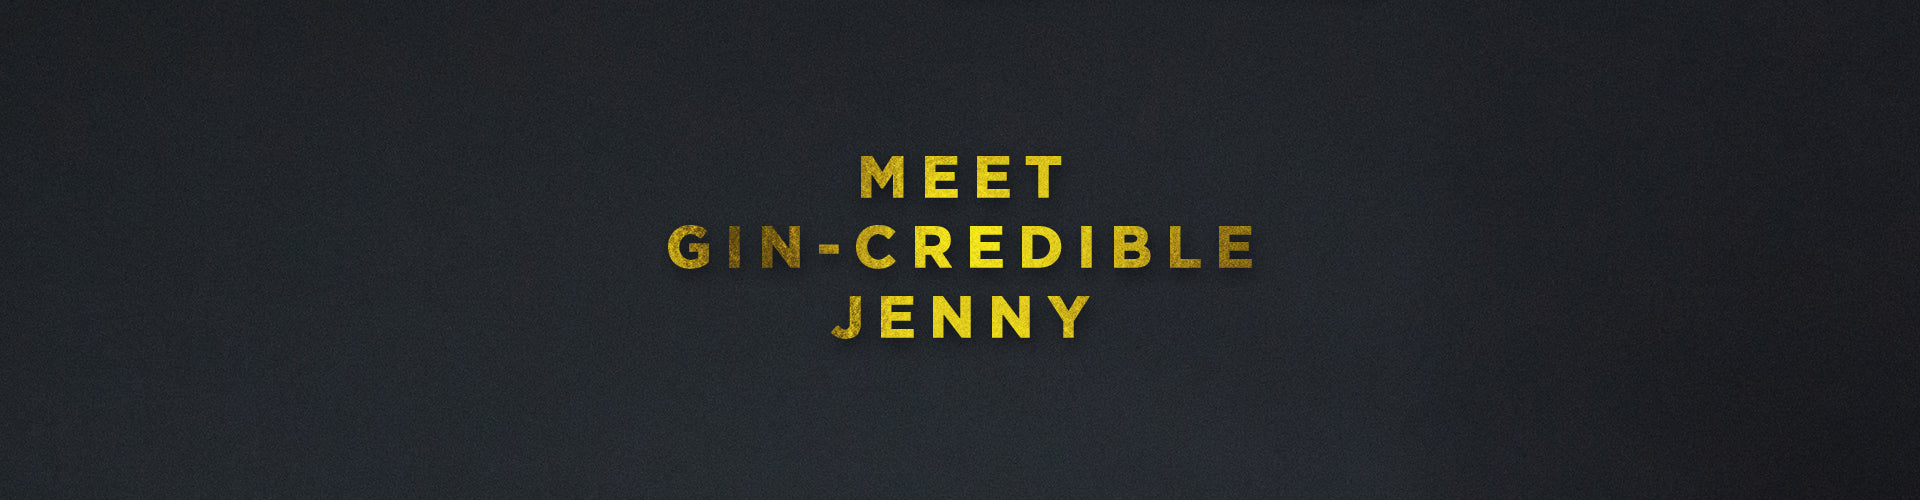 Meet Gin-credible Jenny of Hidden Curiosities